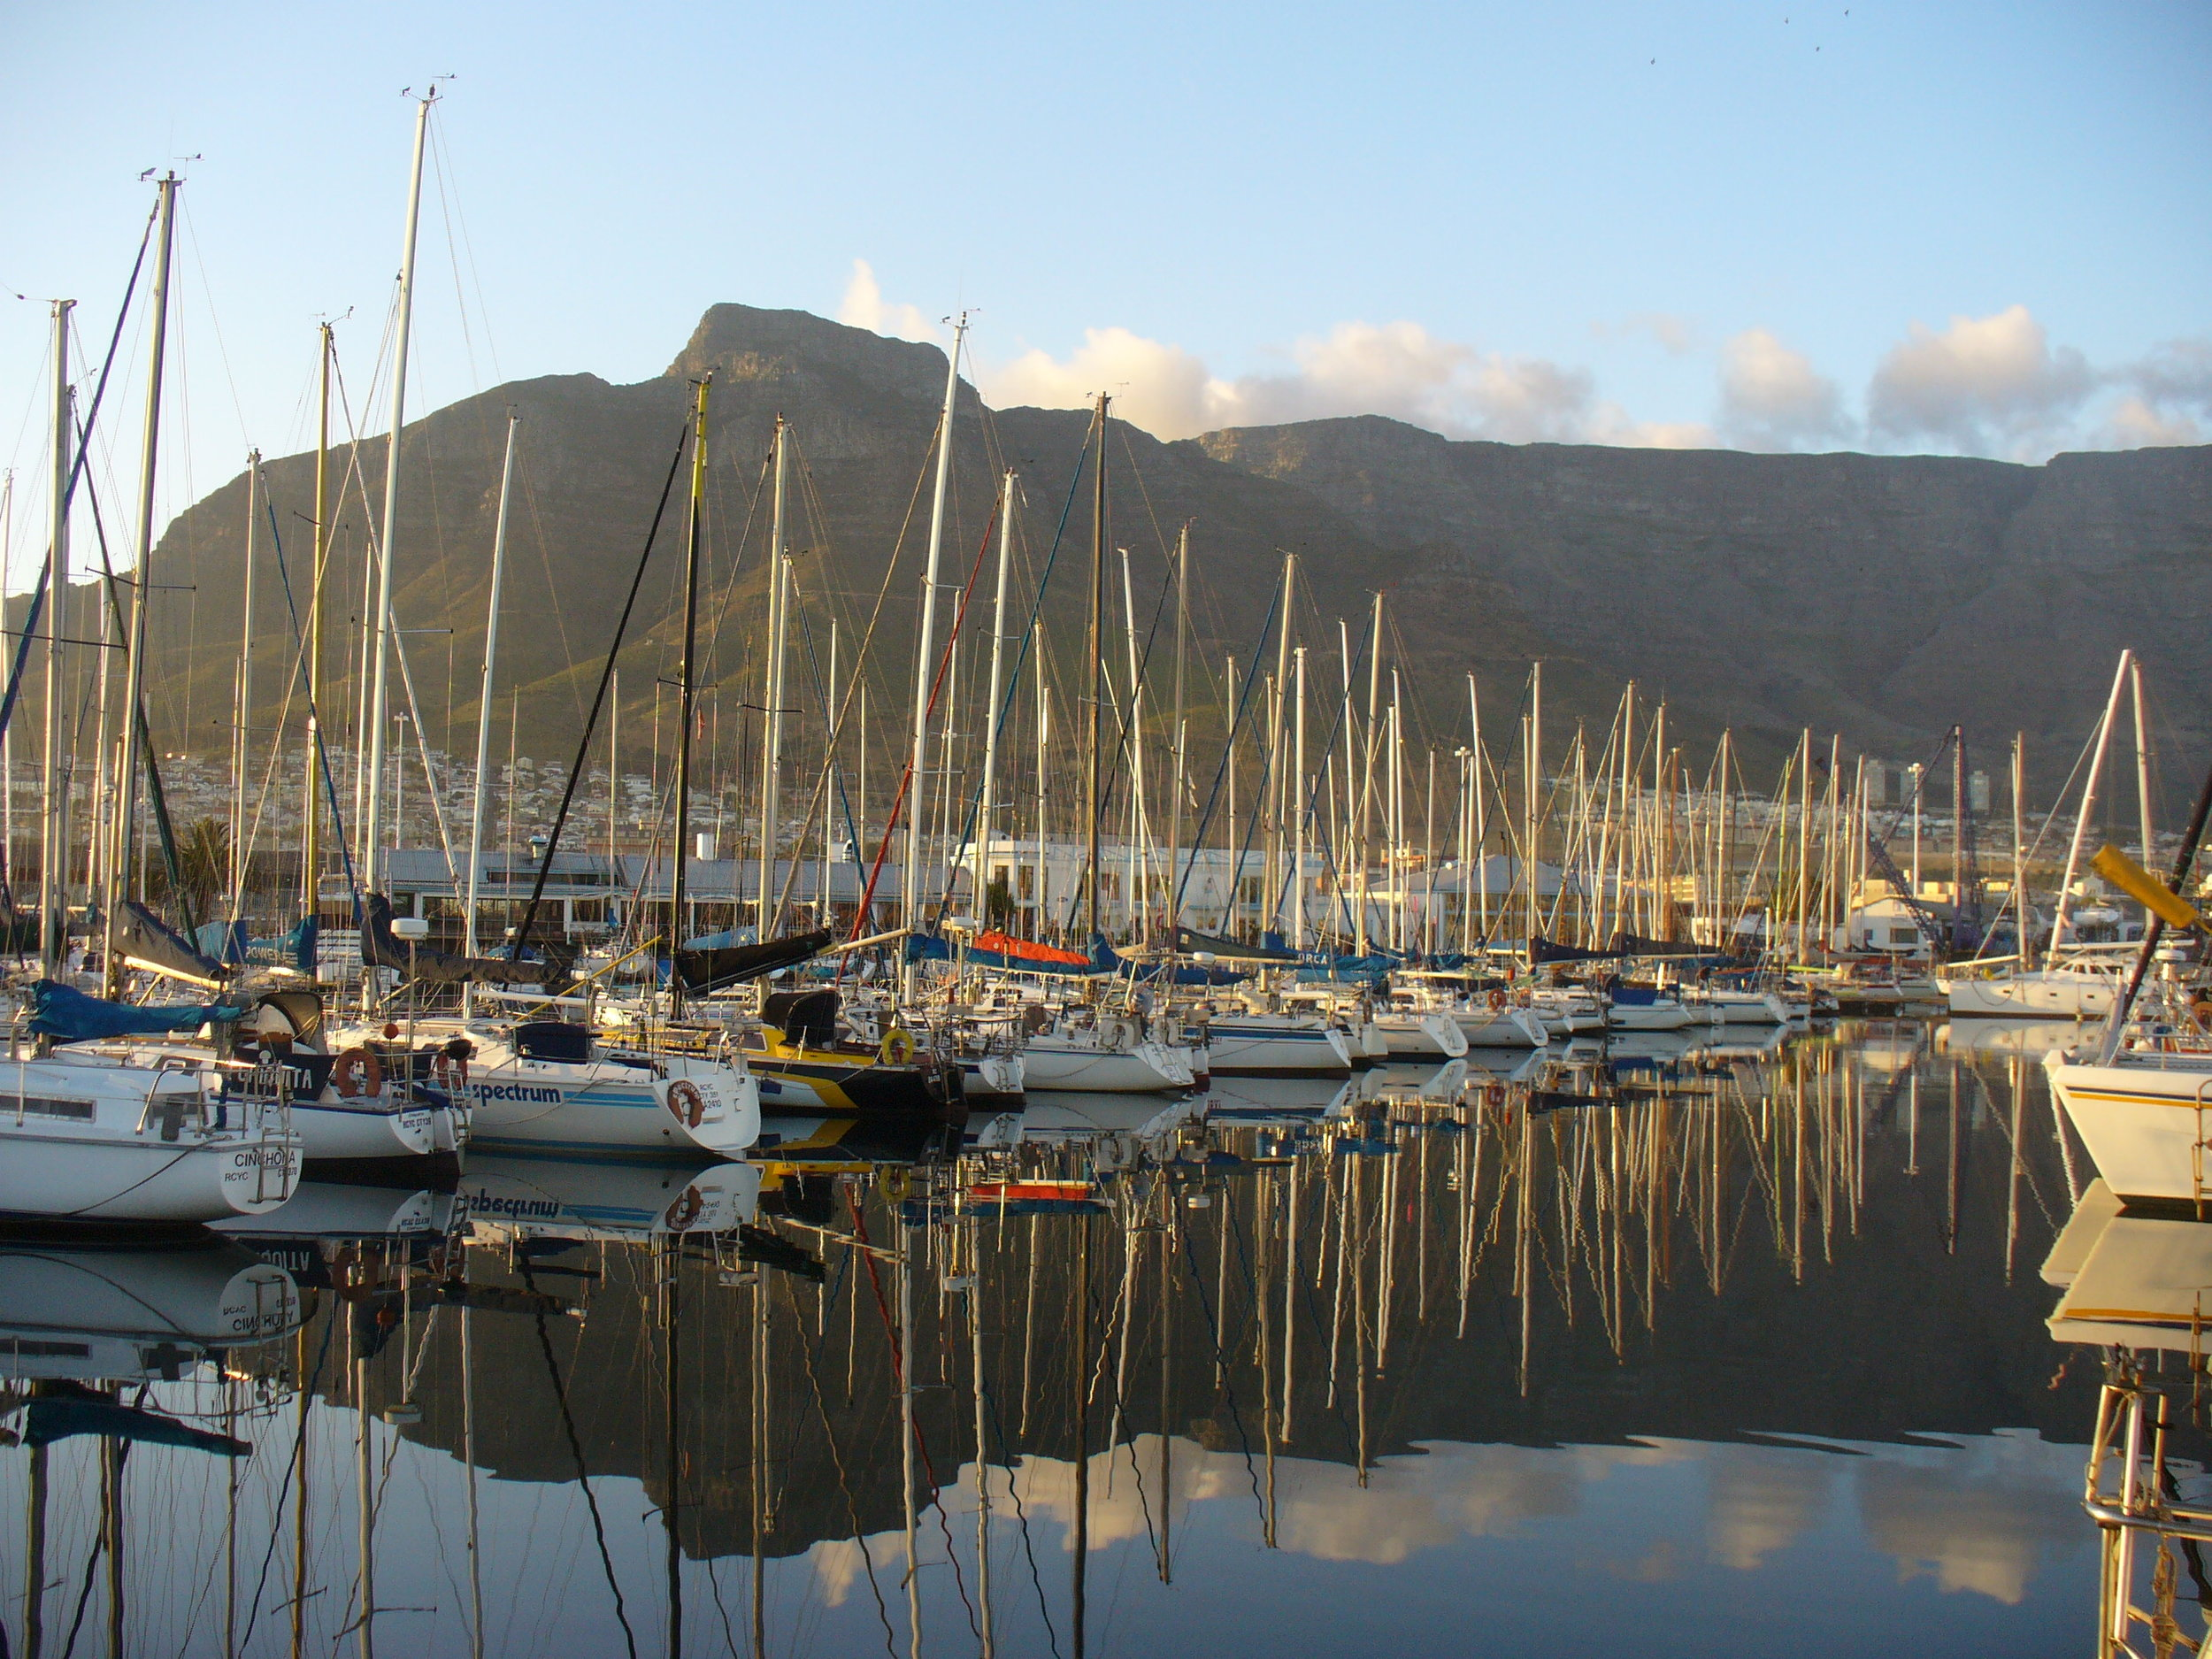 In the shadow of Table Mountain, Cape Town, South Africa